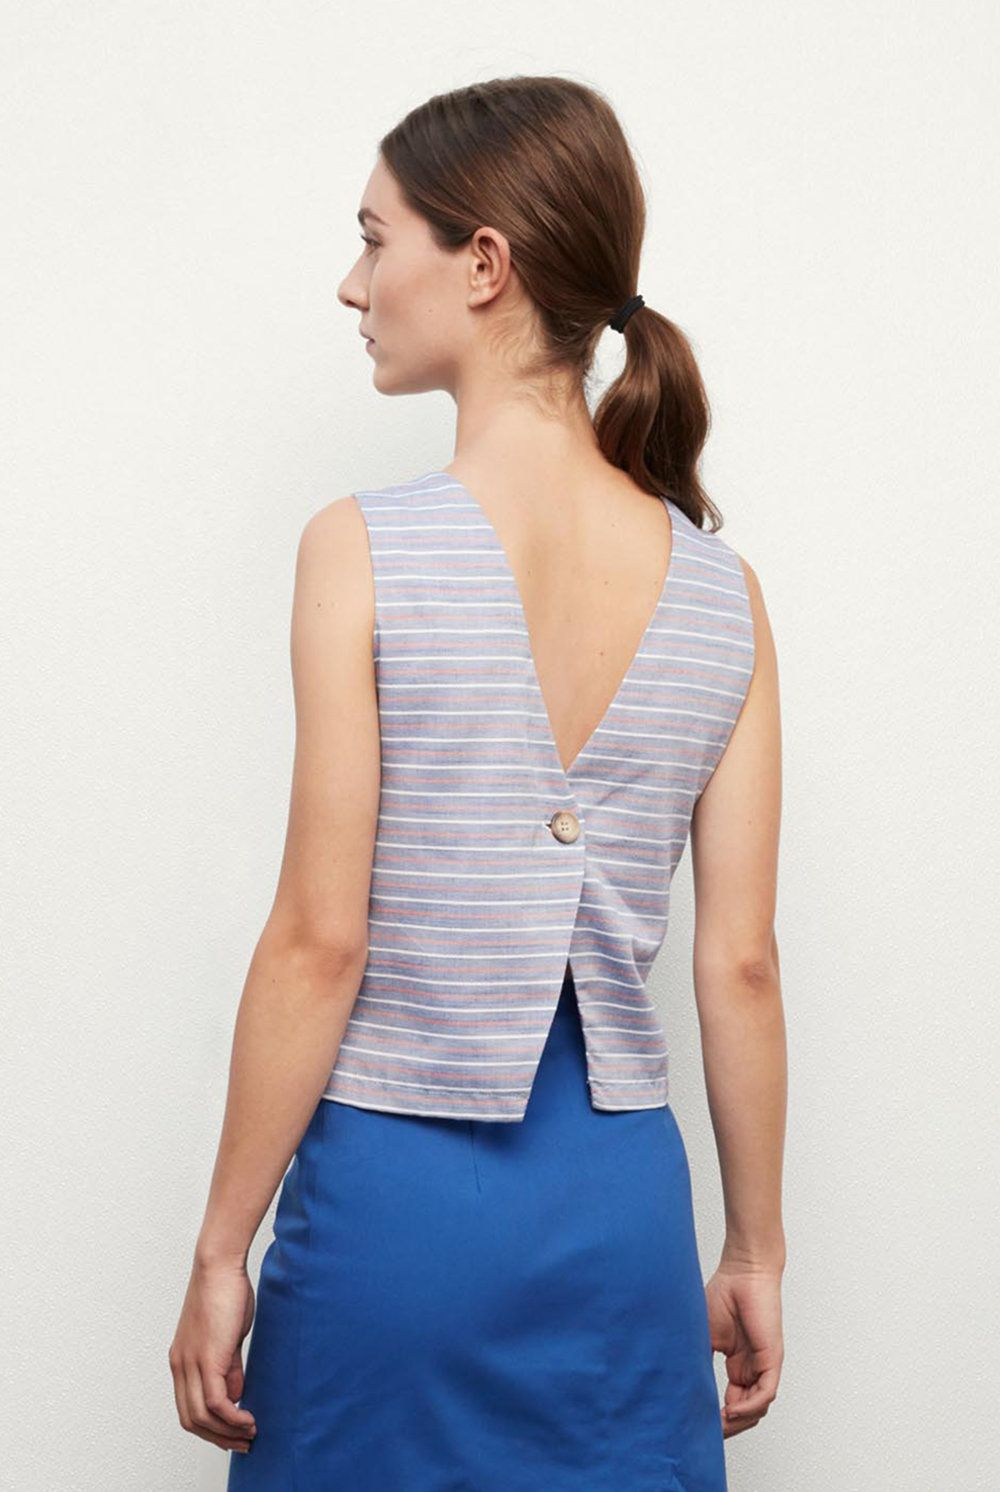 MARCELLE . Stripes Tops, Sleeveless top